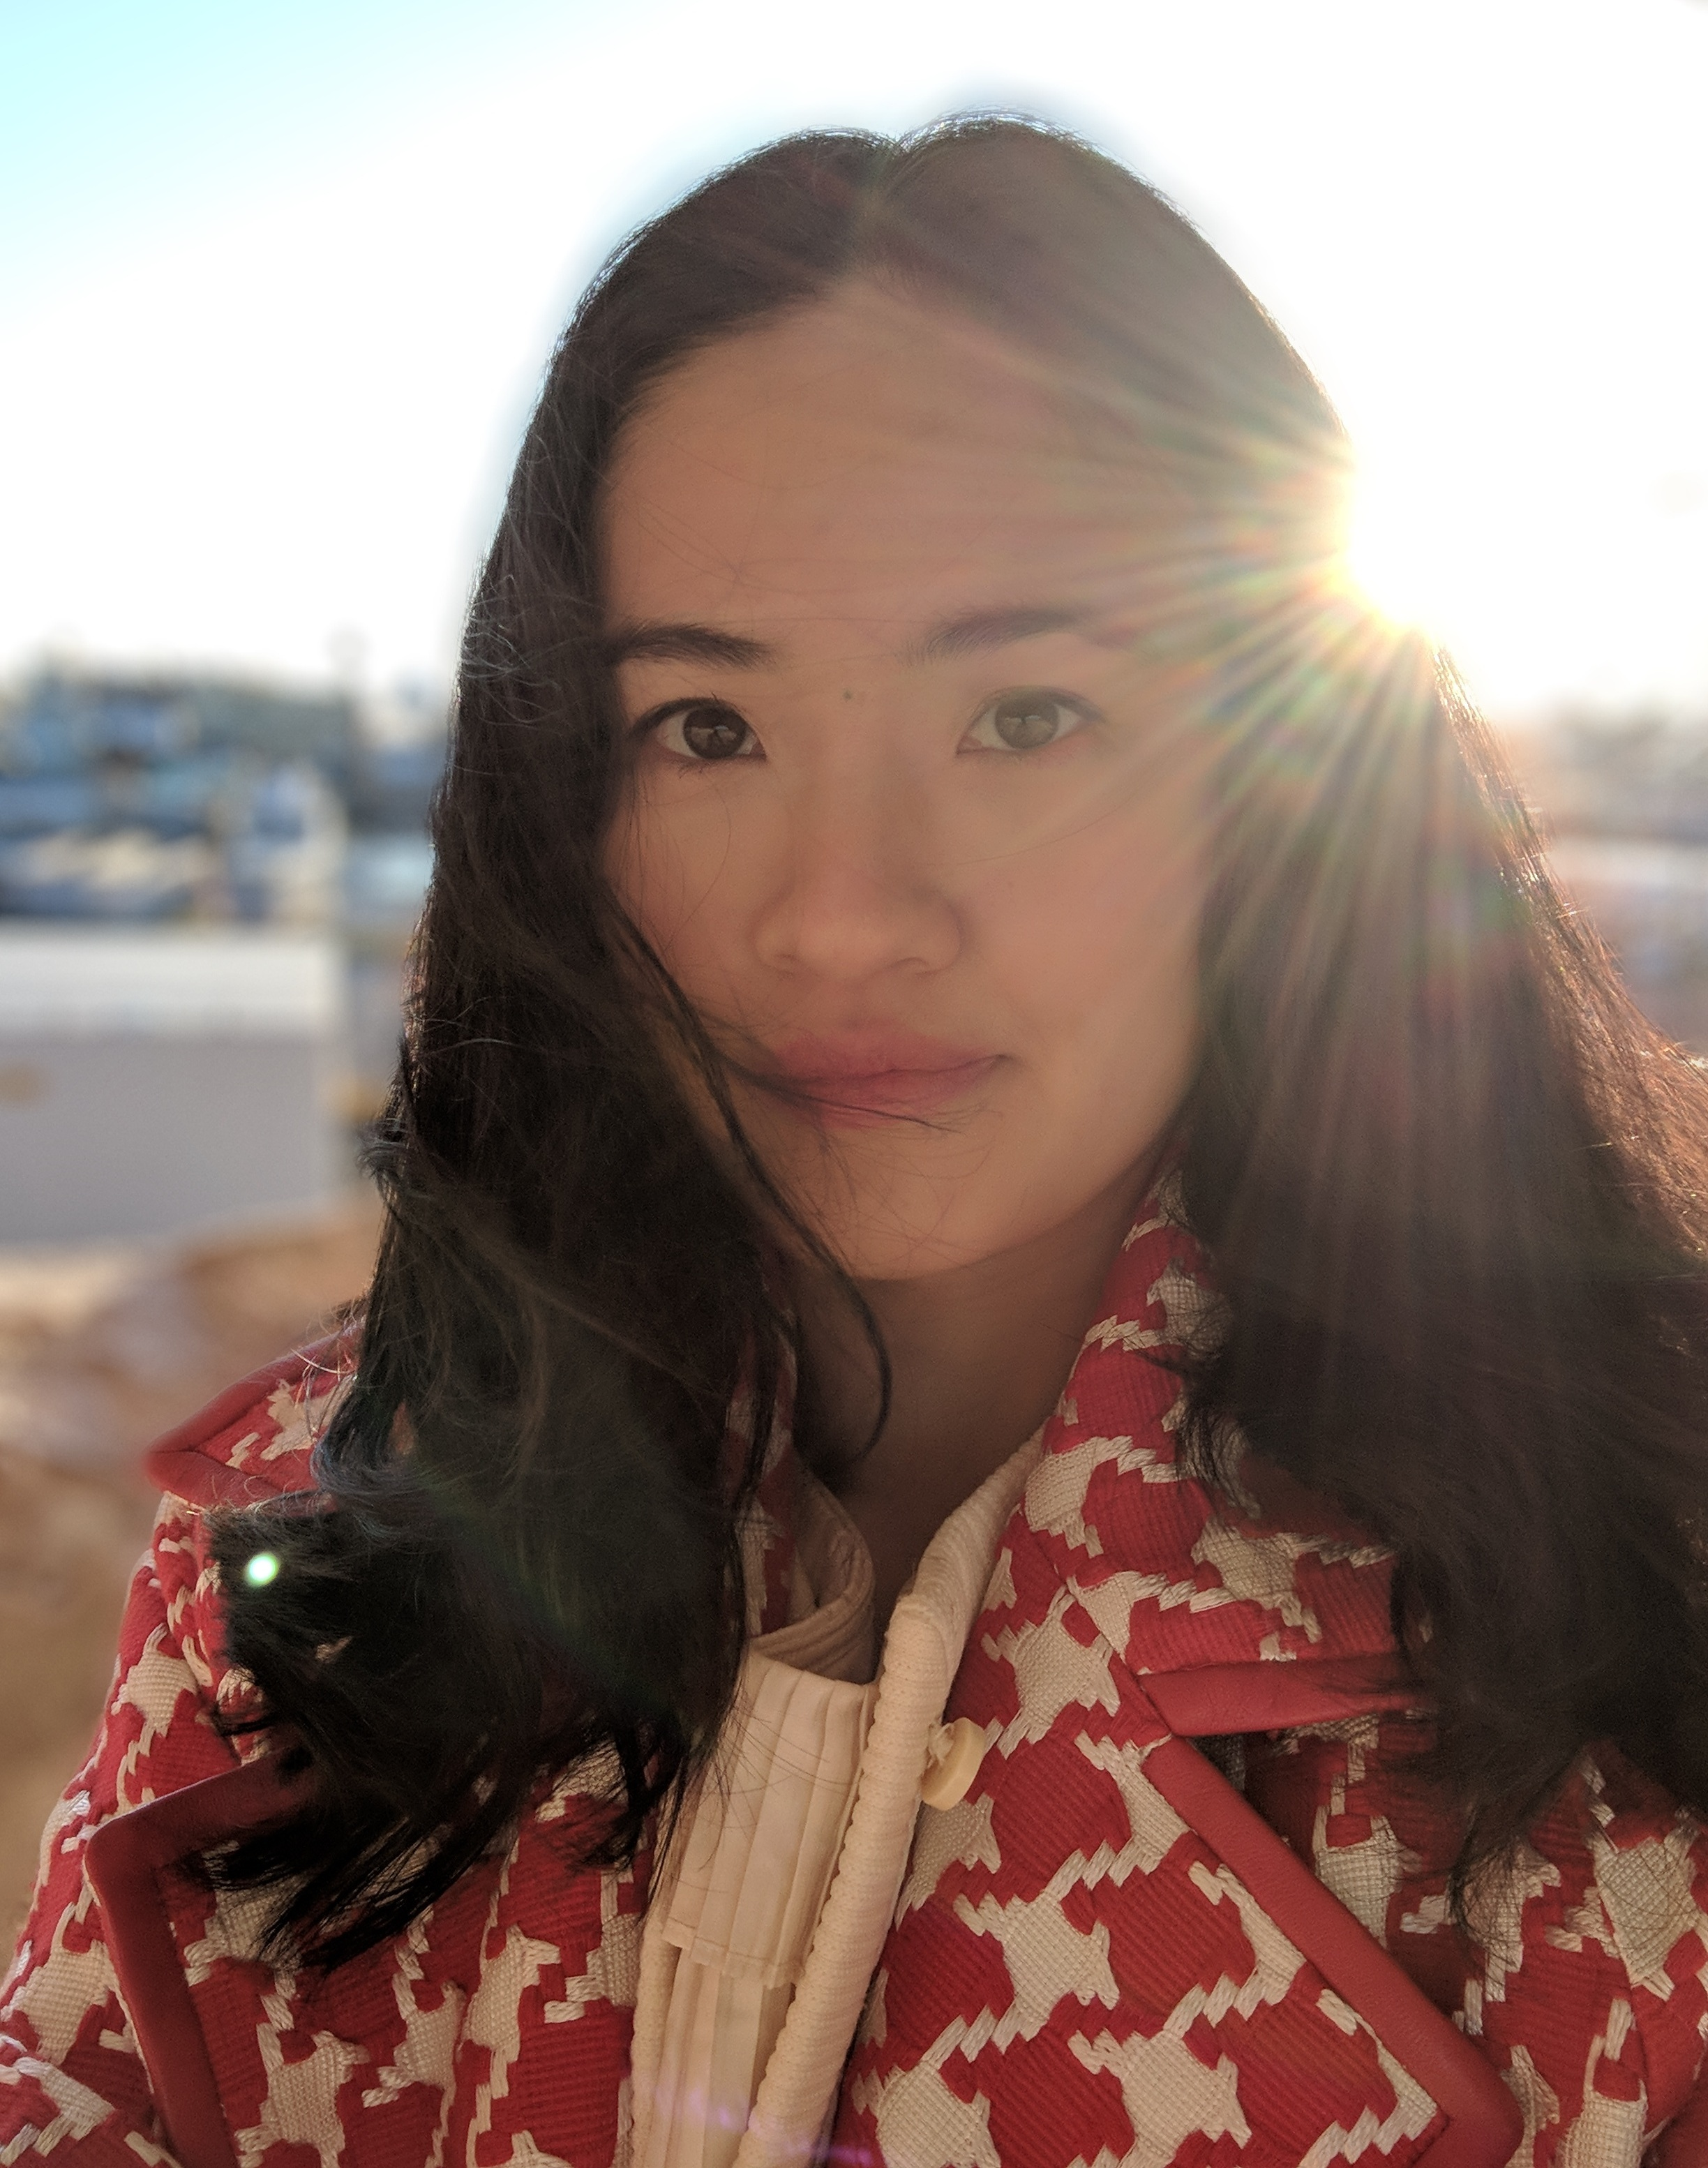 - islander/ Poet/ Lead Creative Writer/ Translator/ A.I. Editor/Chia-Lun Chang is the author of One Day We Become Whites (No, Dear/Small Anchor Press, 2016)She has received fellowships and support from Jerome Hill Artist Fellowship, Lower Manhattan Cultural Council, Tofte Lake Center, and Poets House. Born and raised in New Taipei City, Taiwan, she lives in New York City.